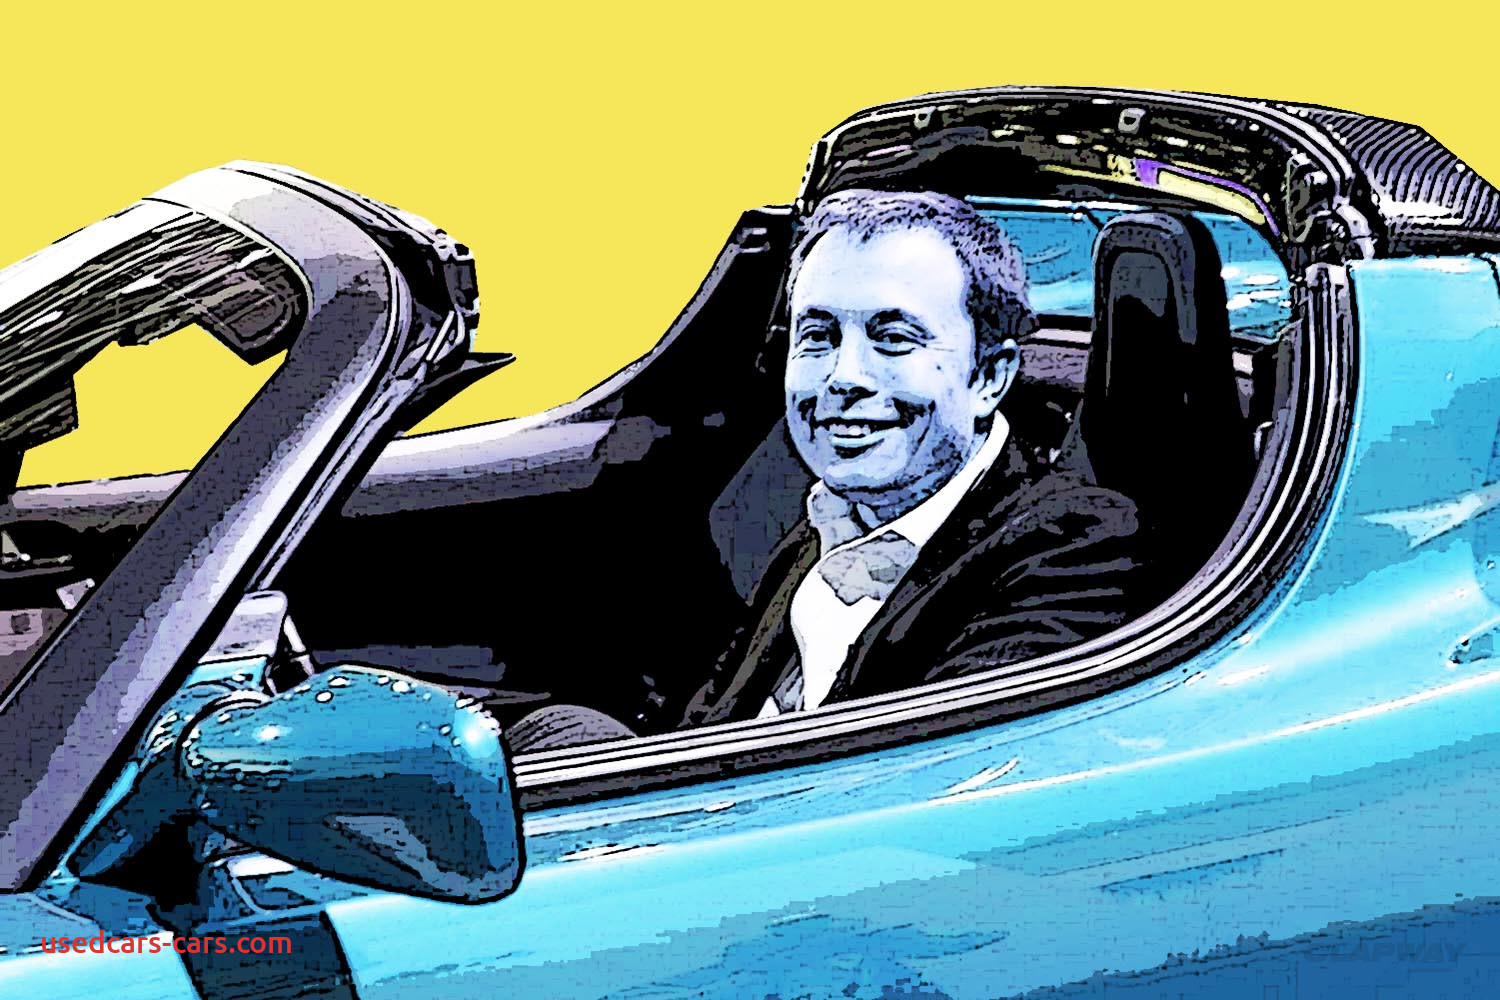 Can Tesla Self Drive Elegant Elon Musk Tesla Already Ahead Of Mercedes Self Driving Cars